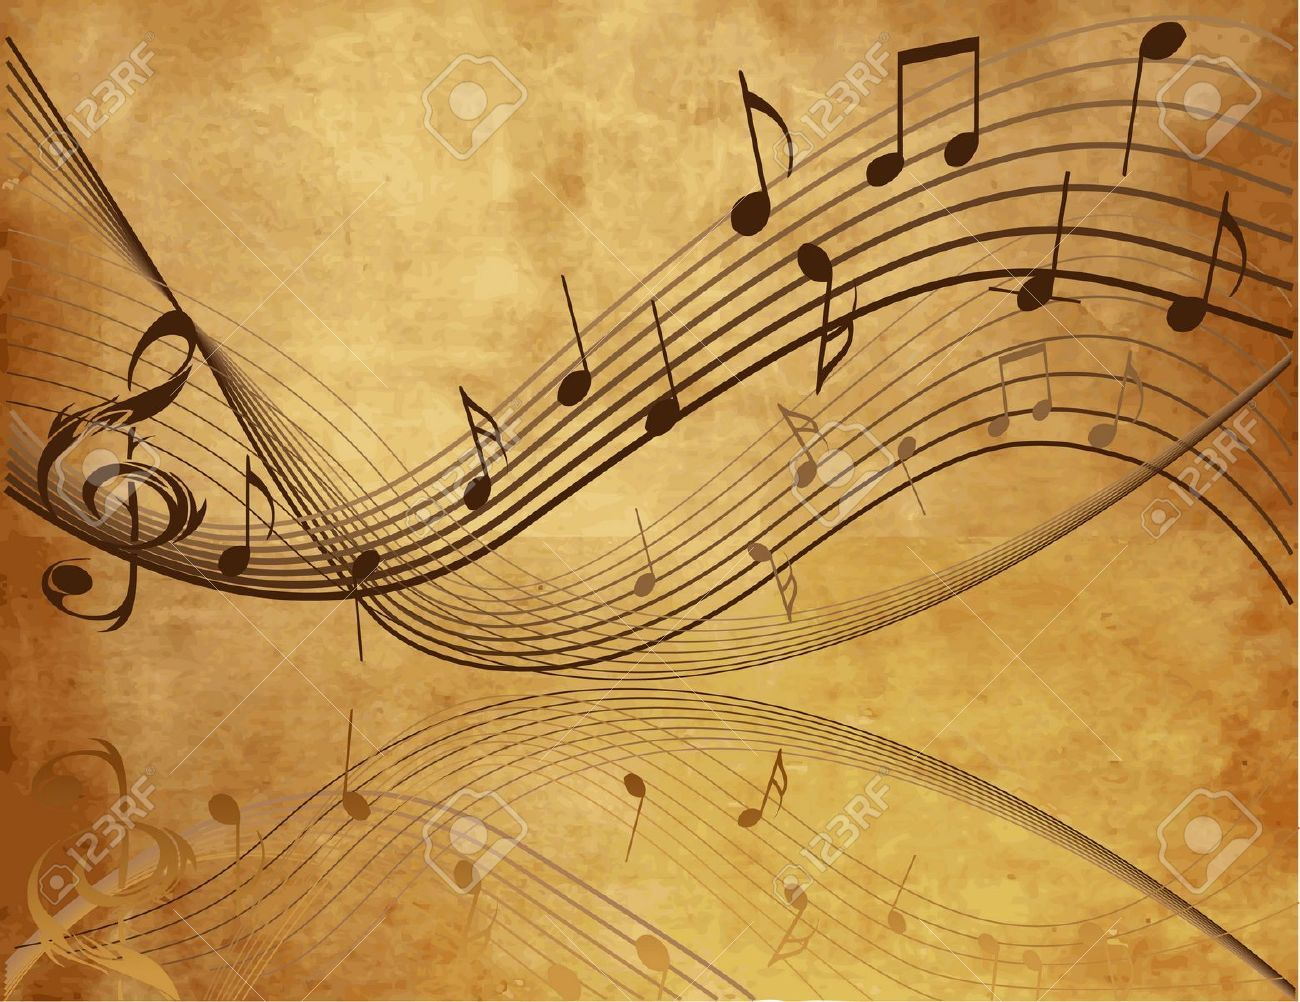 Vintage Background With Music Notes Royalty Free Cliparts, Vectors ...